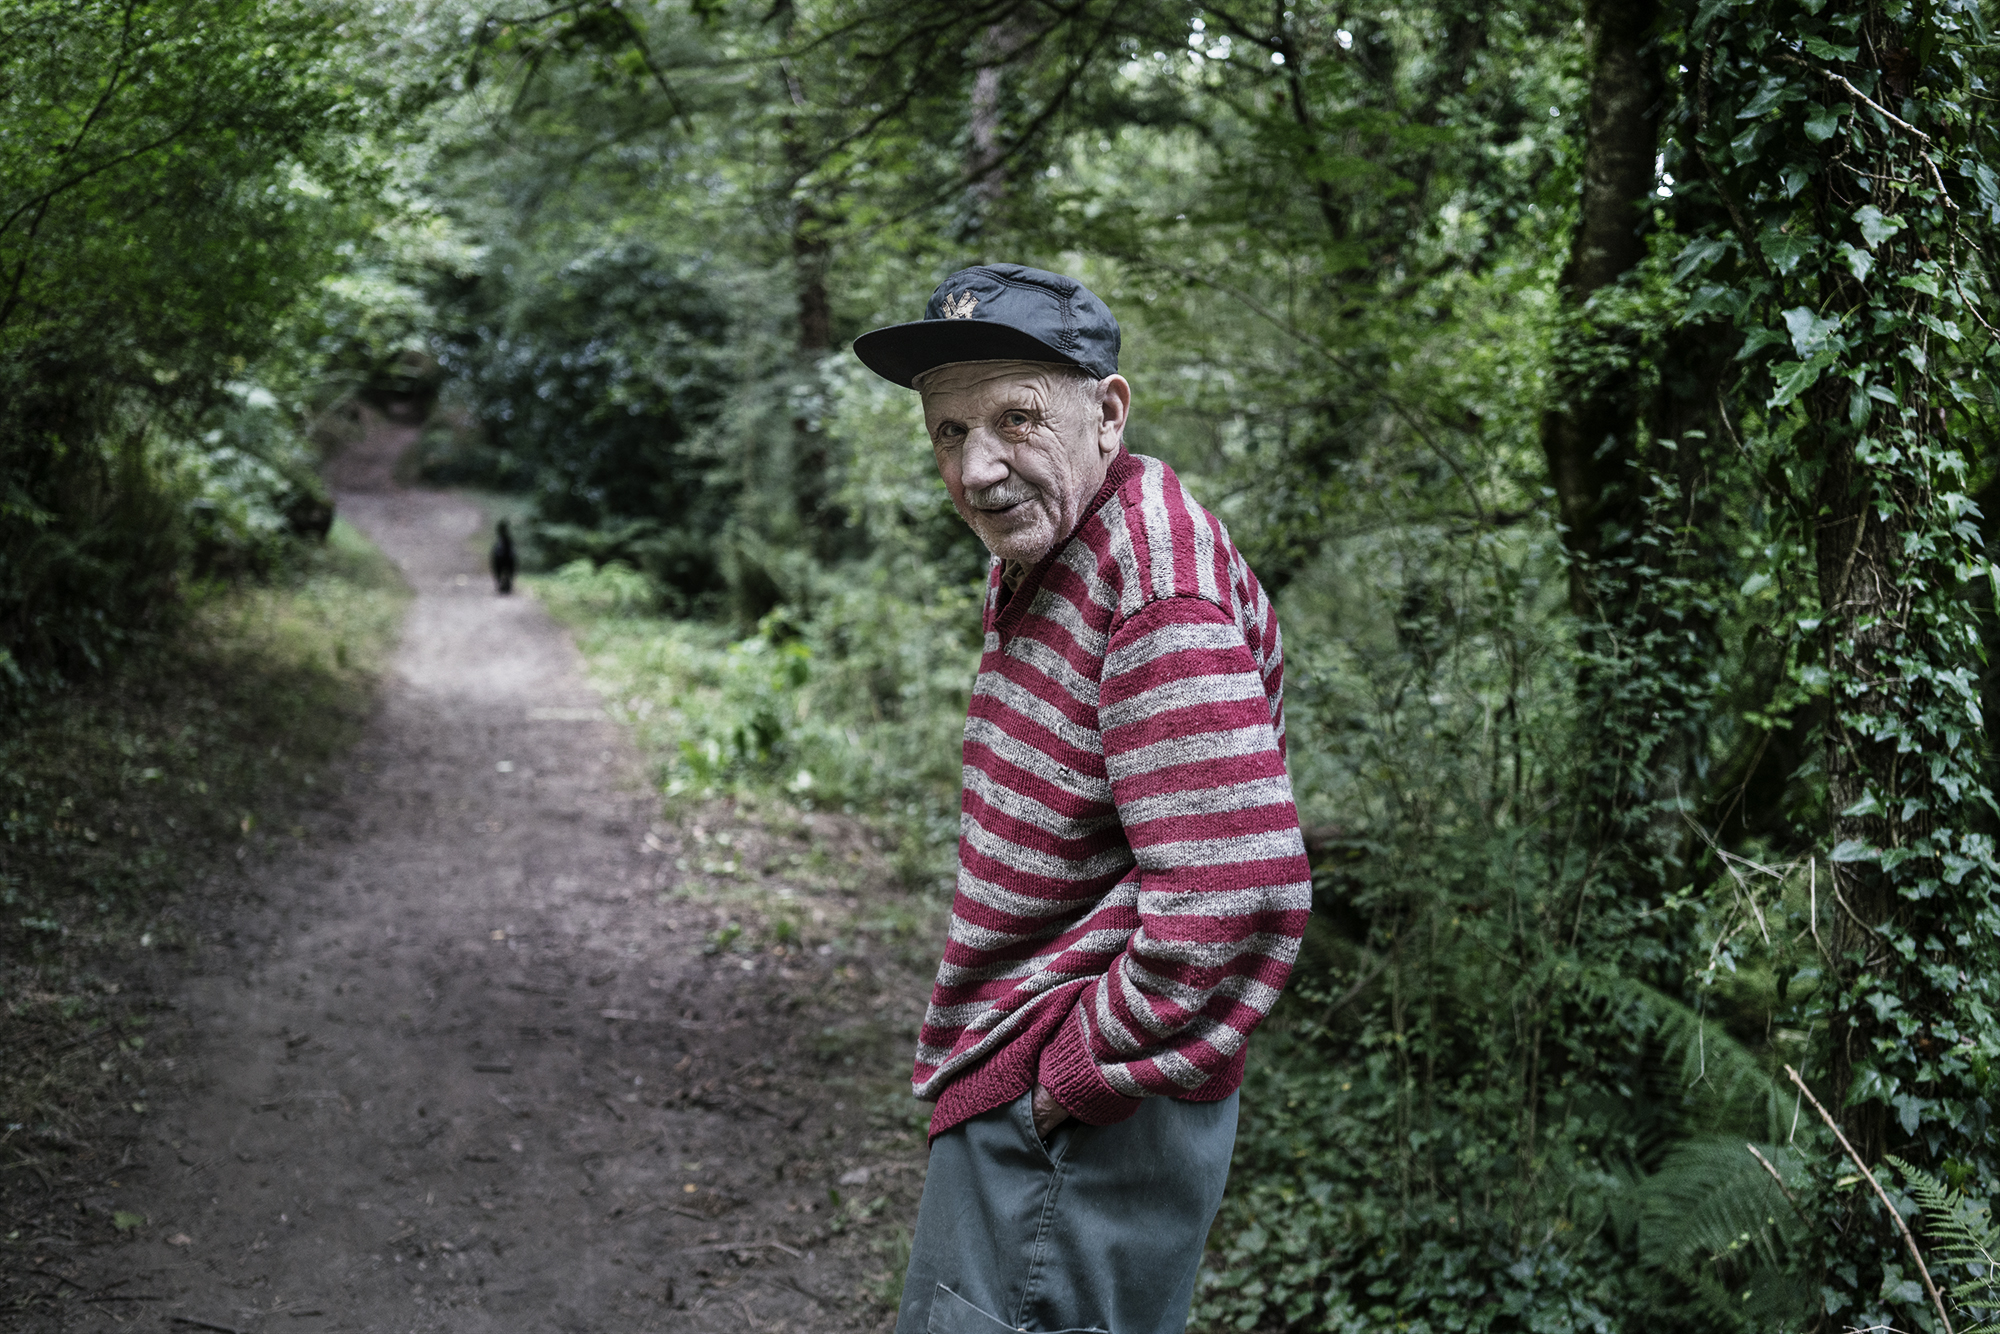 Brittany_2018_Old_French_Man_In_Forest-032color.jpg